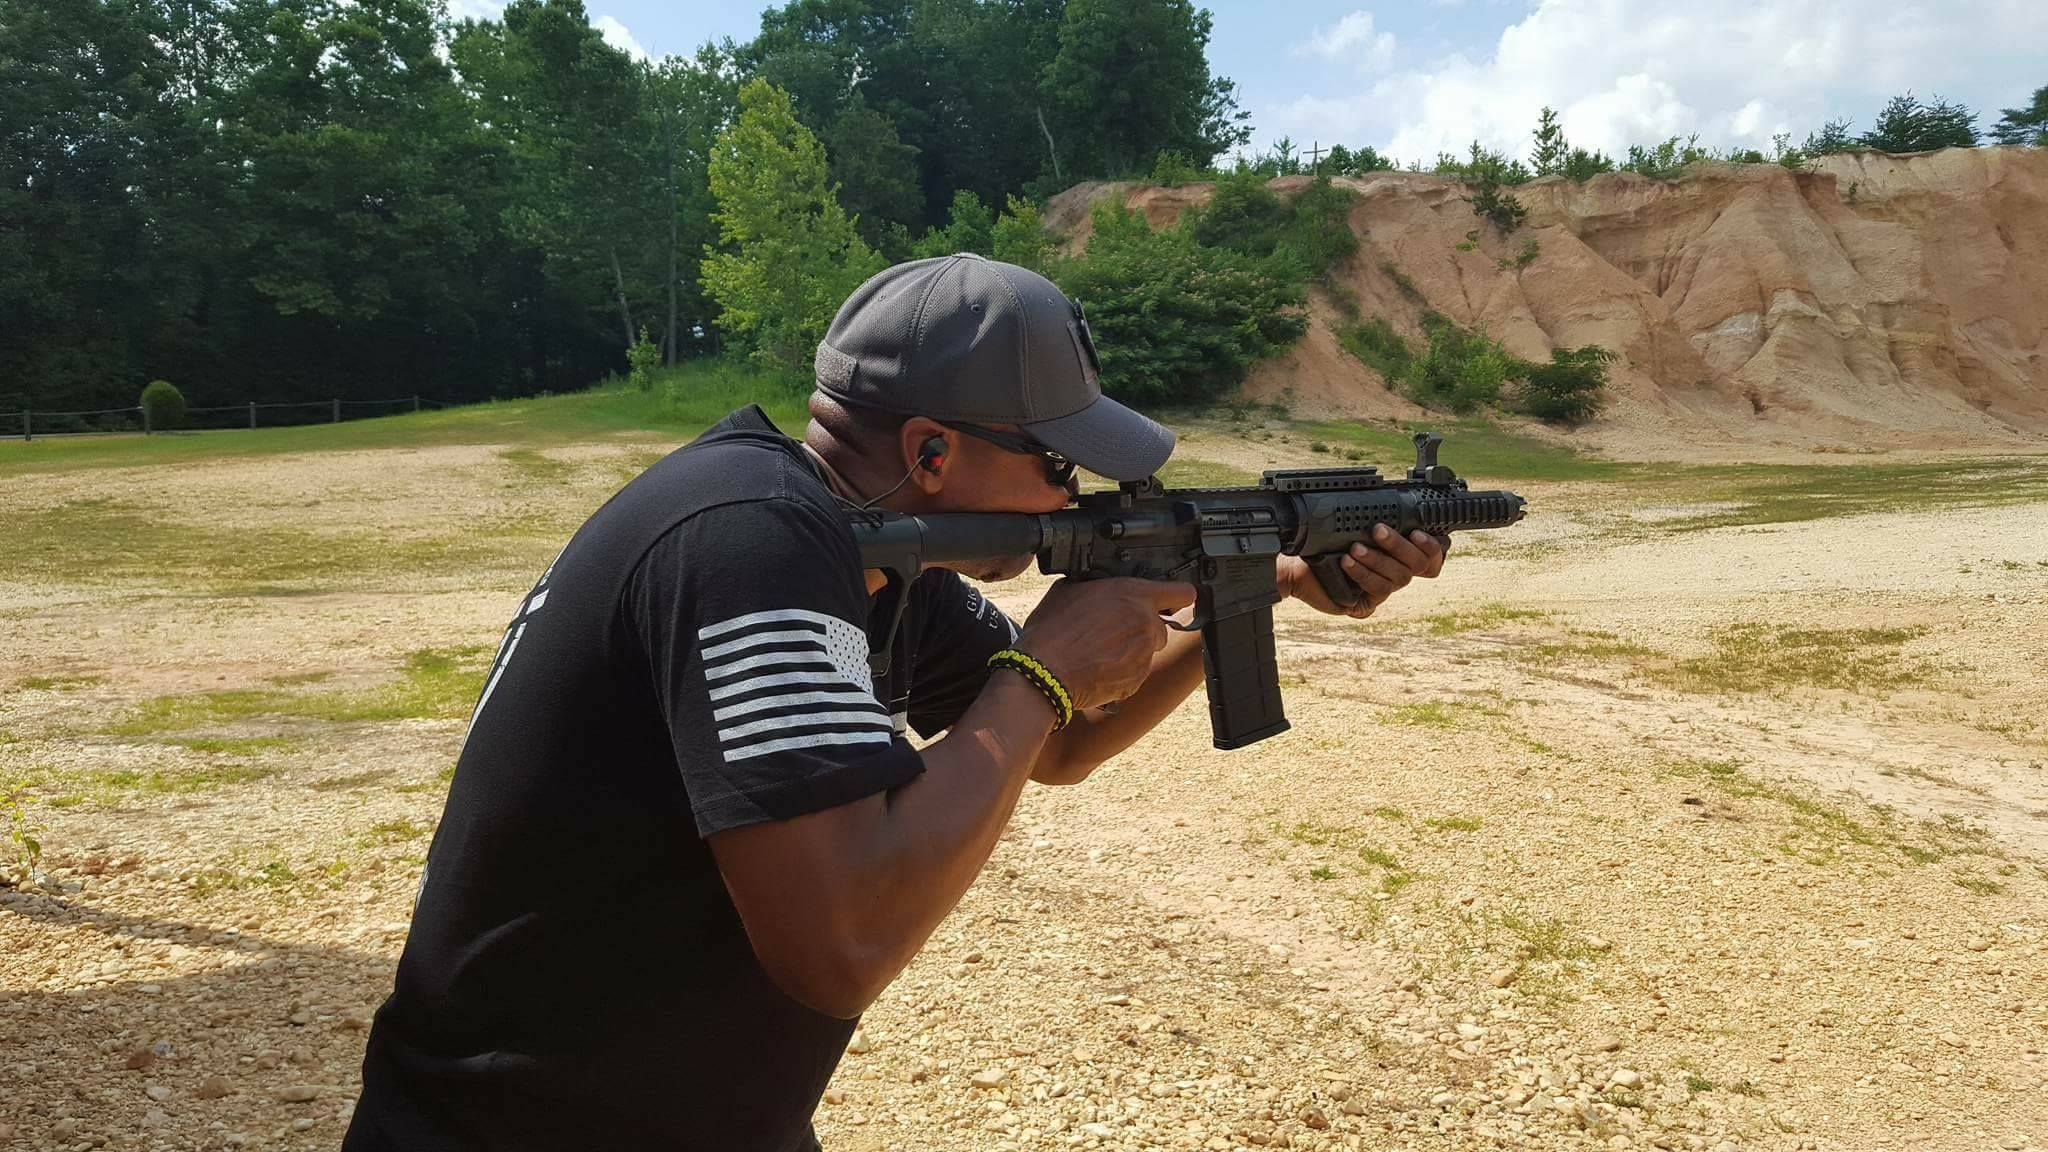 South Carolina concealed handgun training pistol cwp rifle carbine tactical